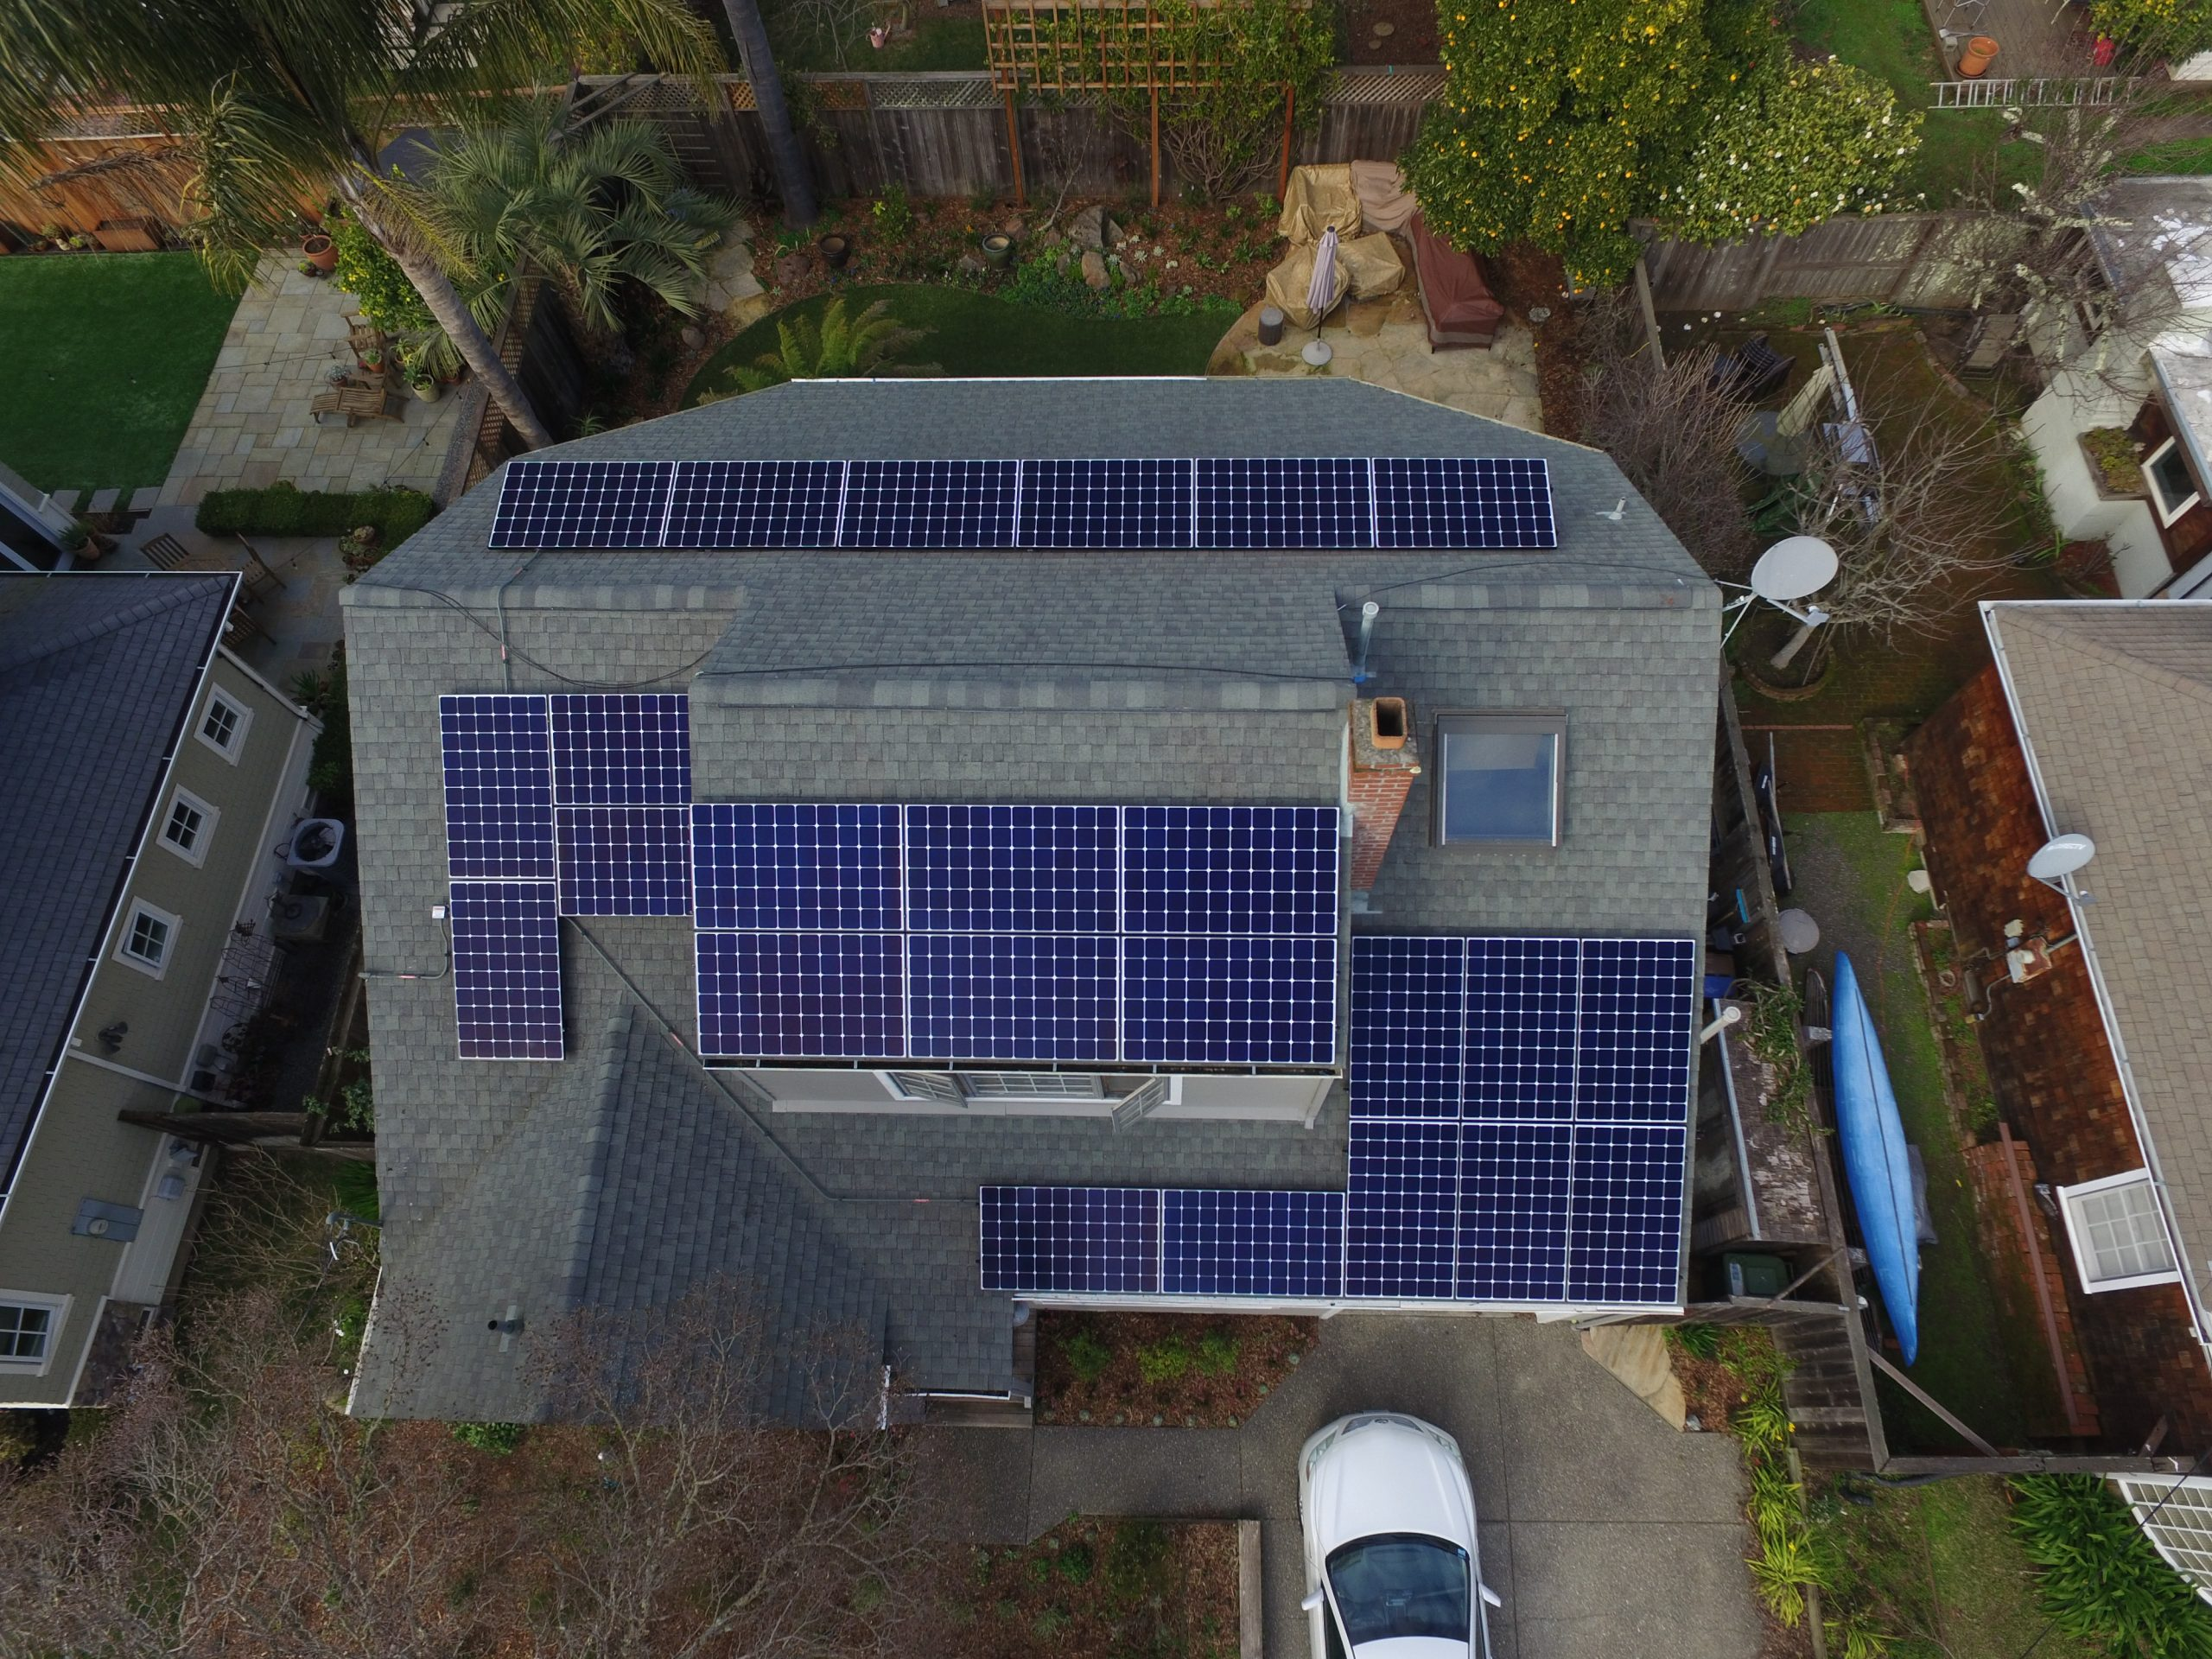 Residential rooftop solar installation from above showing display of different solar arrays